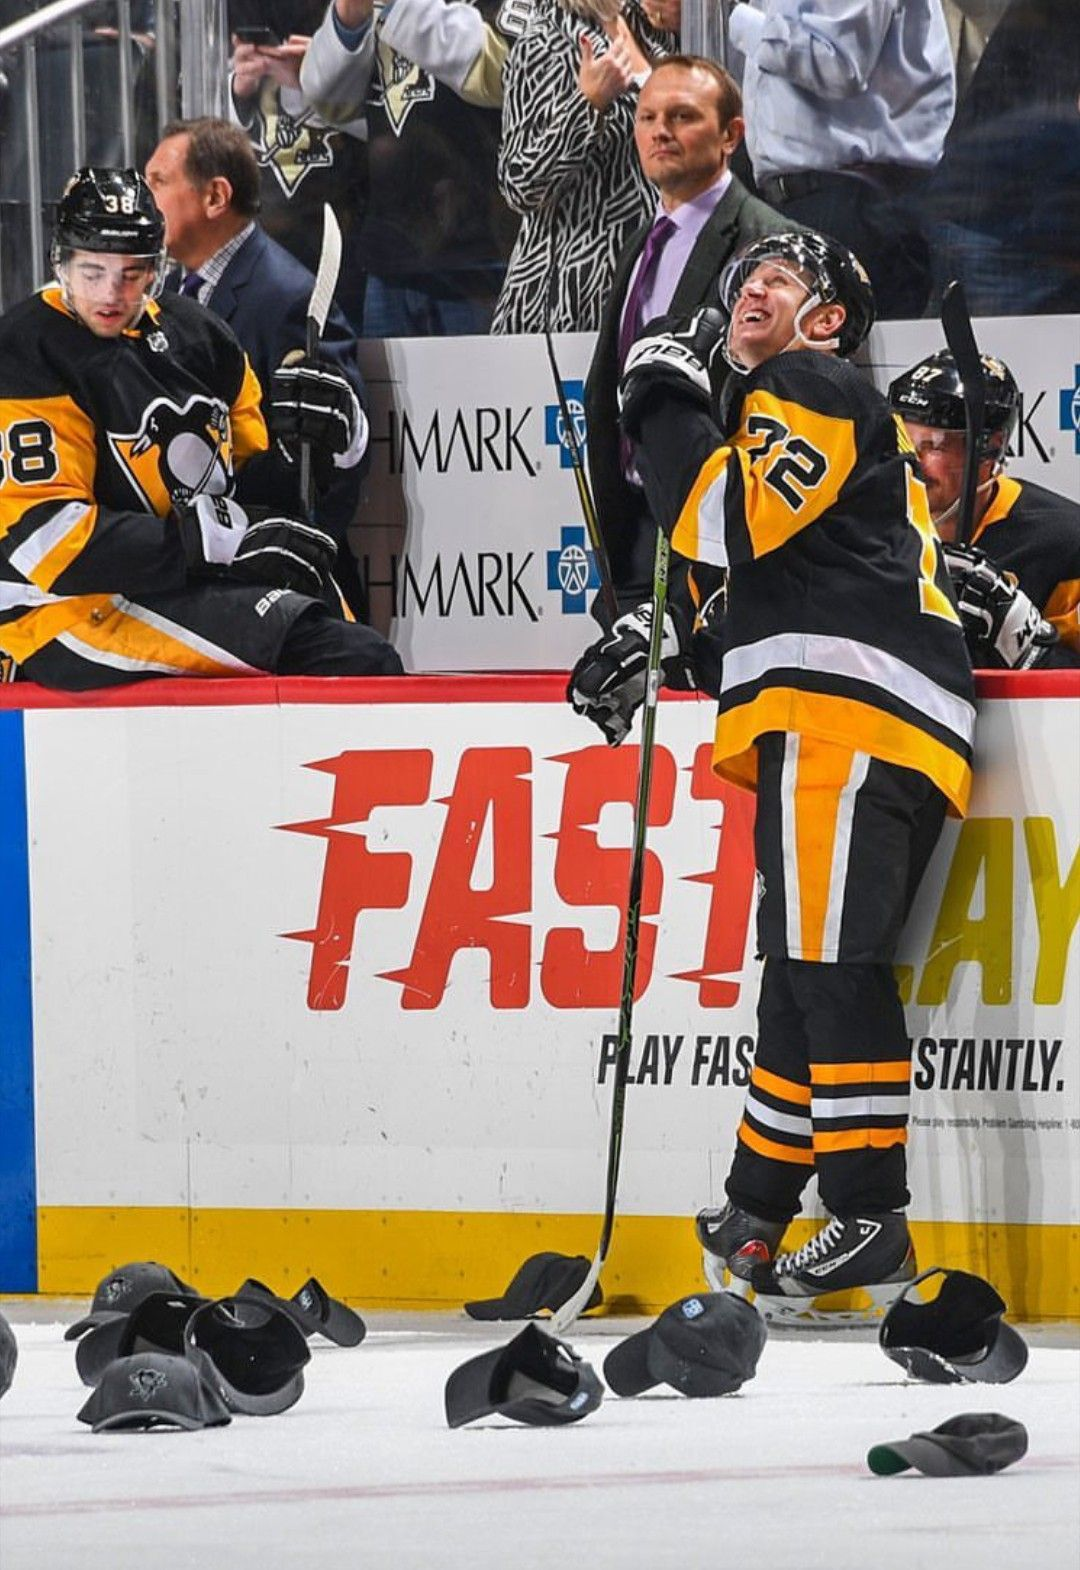 2 47 Fastest Hat Trick In Pens History Patric Hornqvist 12 4 18 Nhl Pittsburgh Penguins Pittsburgh Penquins Pittsburgh Penguins Hockey